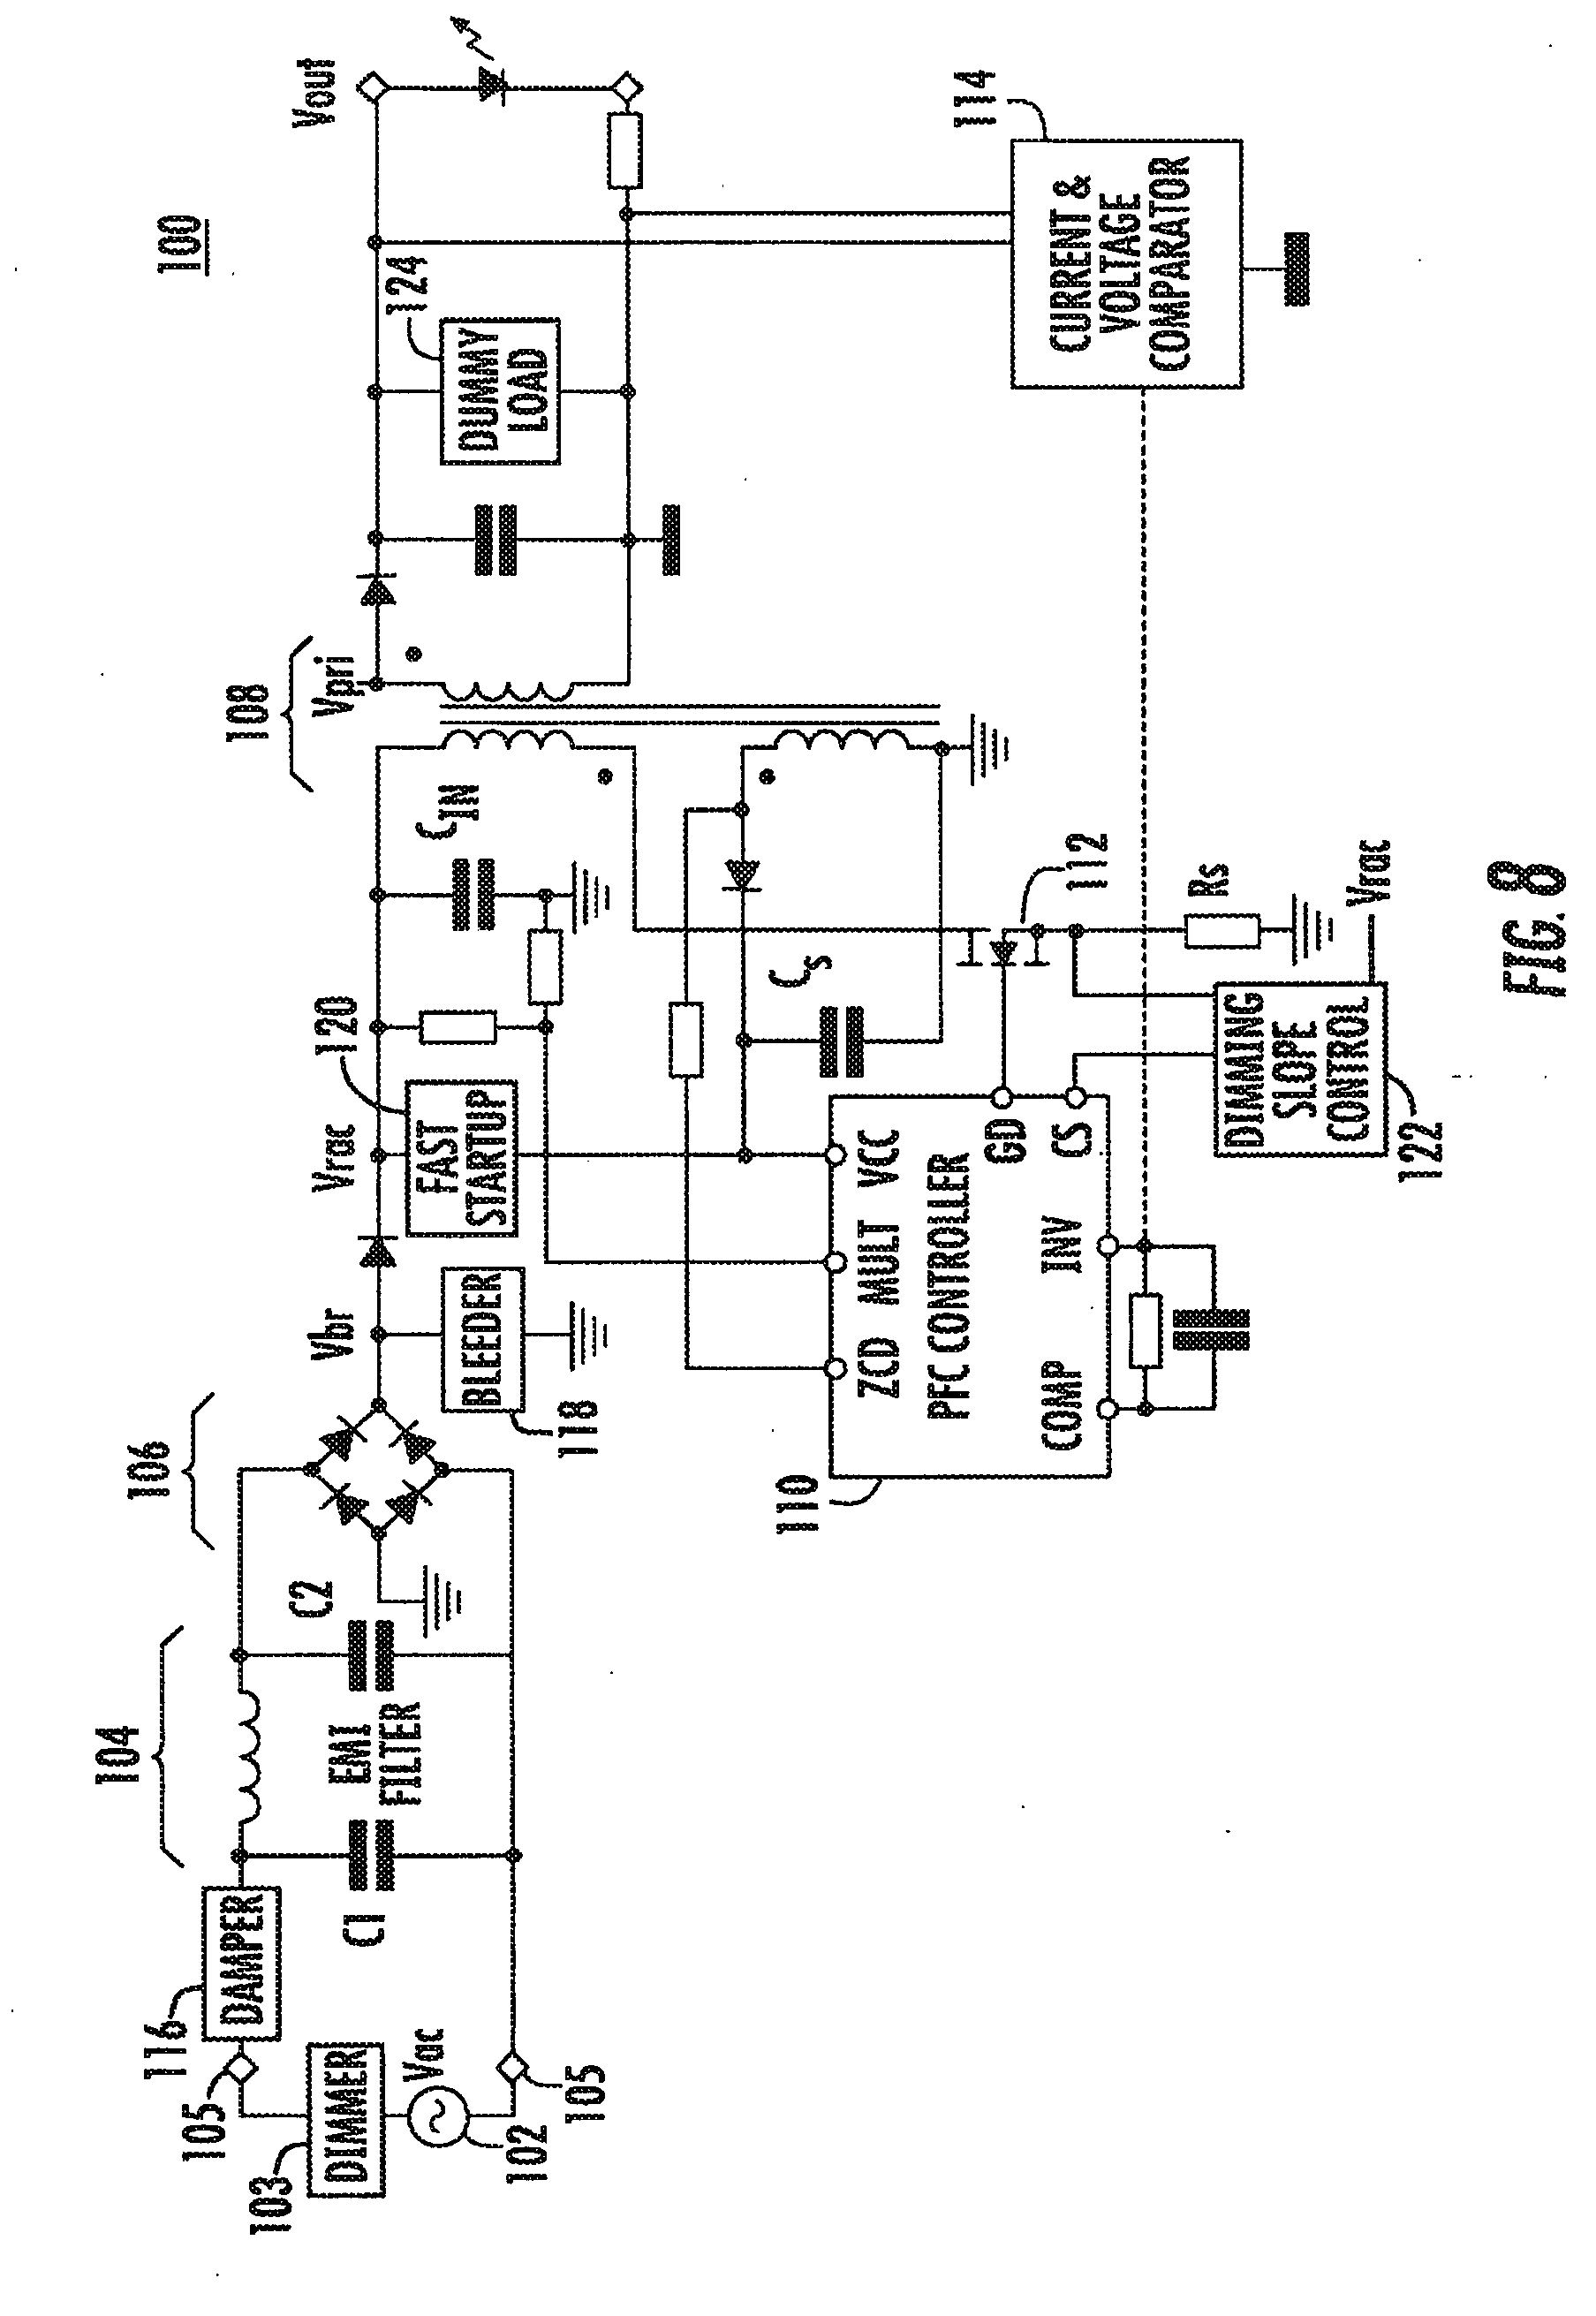 Triac Dimmable Power Supply Unit For Led Patent 2567596 Of Complete Circuit Diagram Firing Angle Control